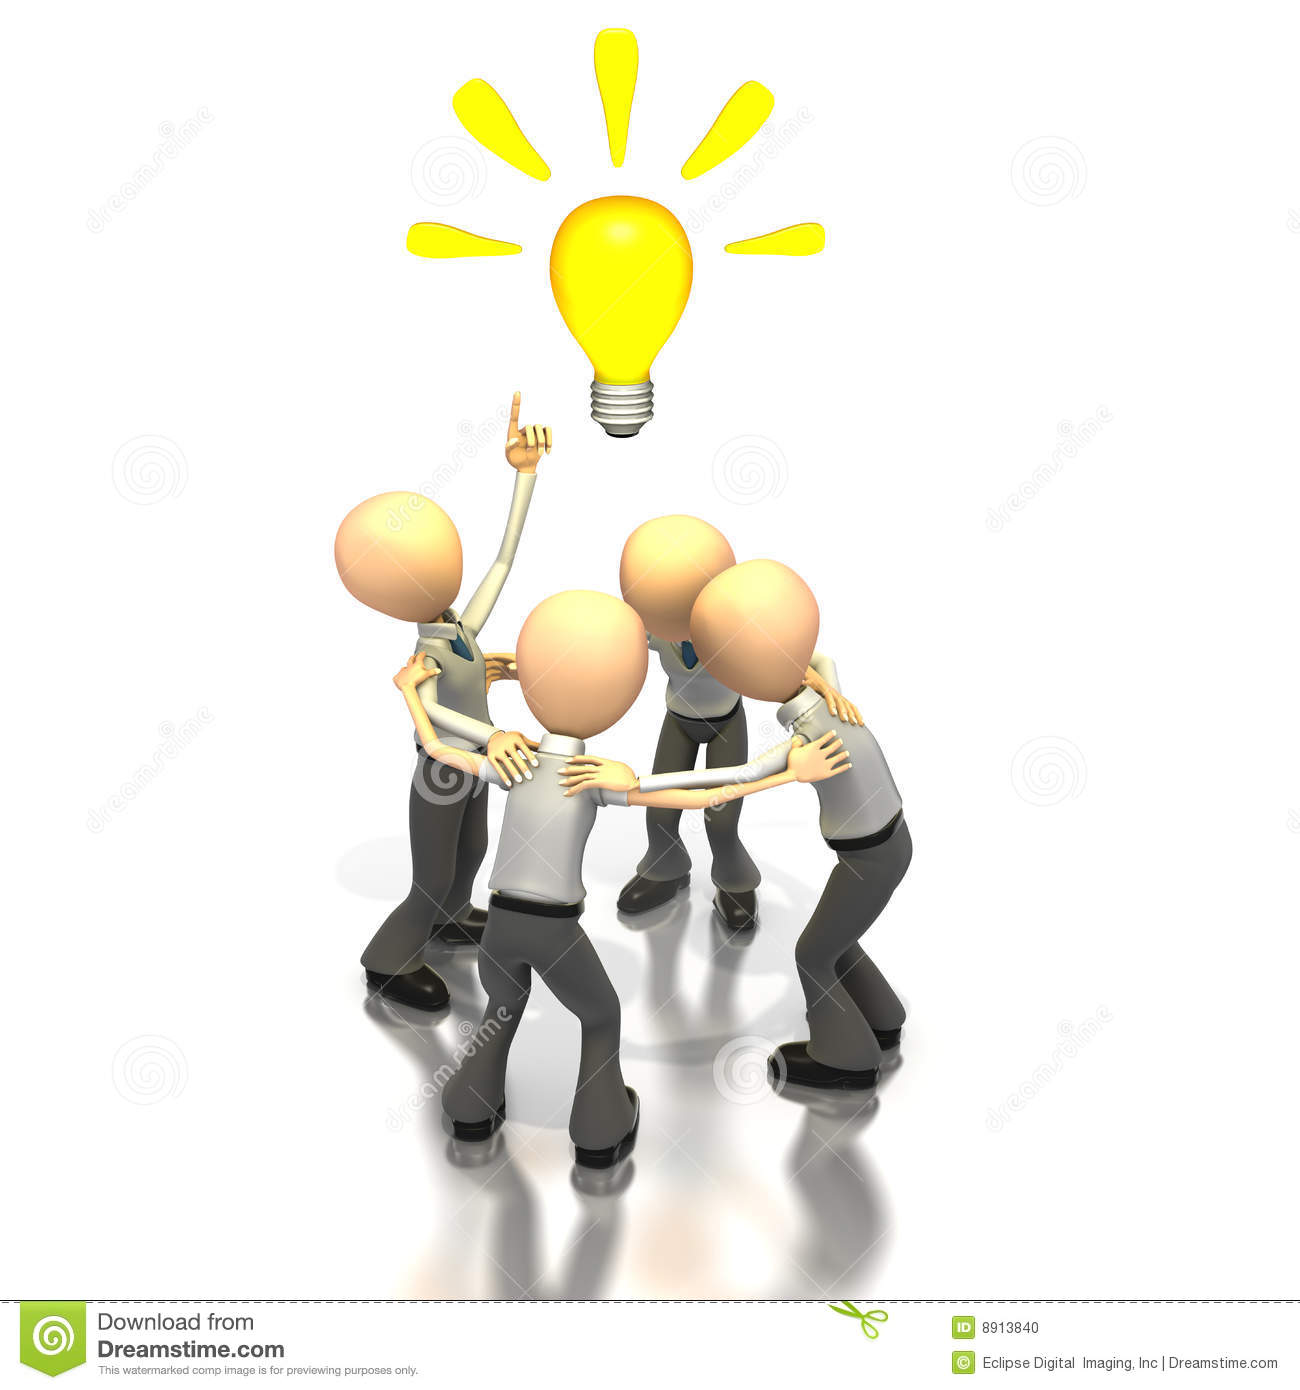 Brainstorming Ideas Stock Photo Image 8913840